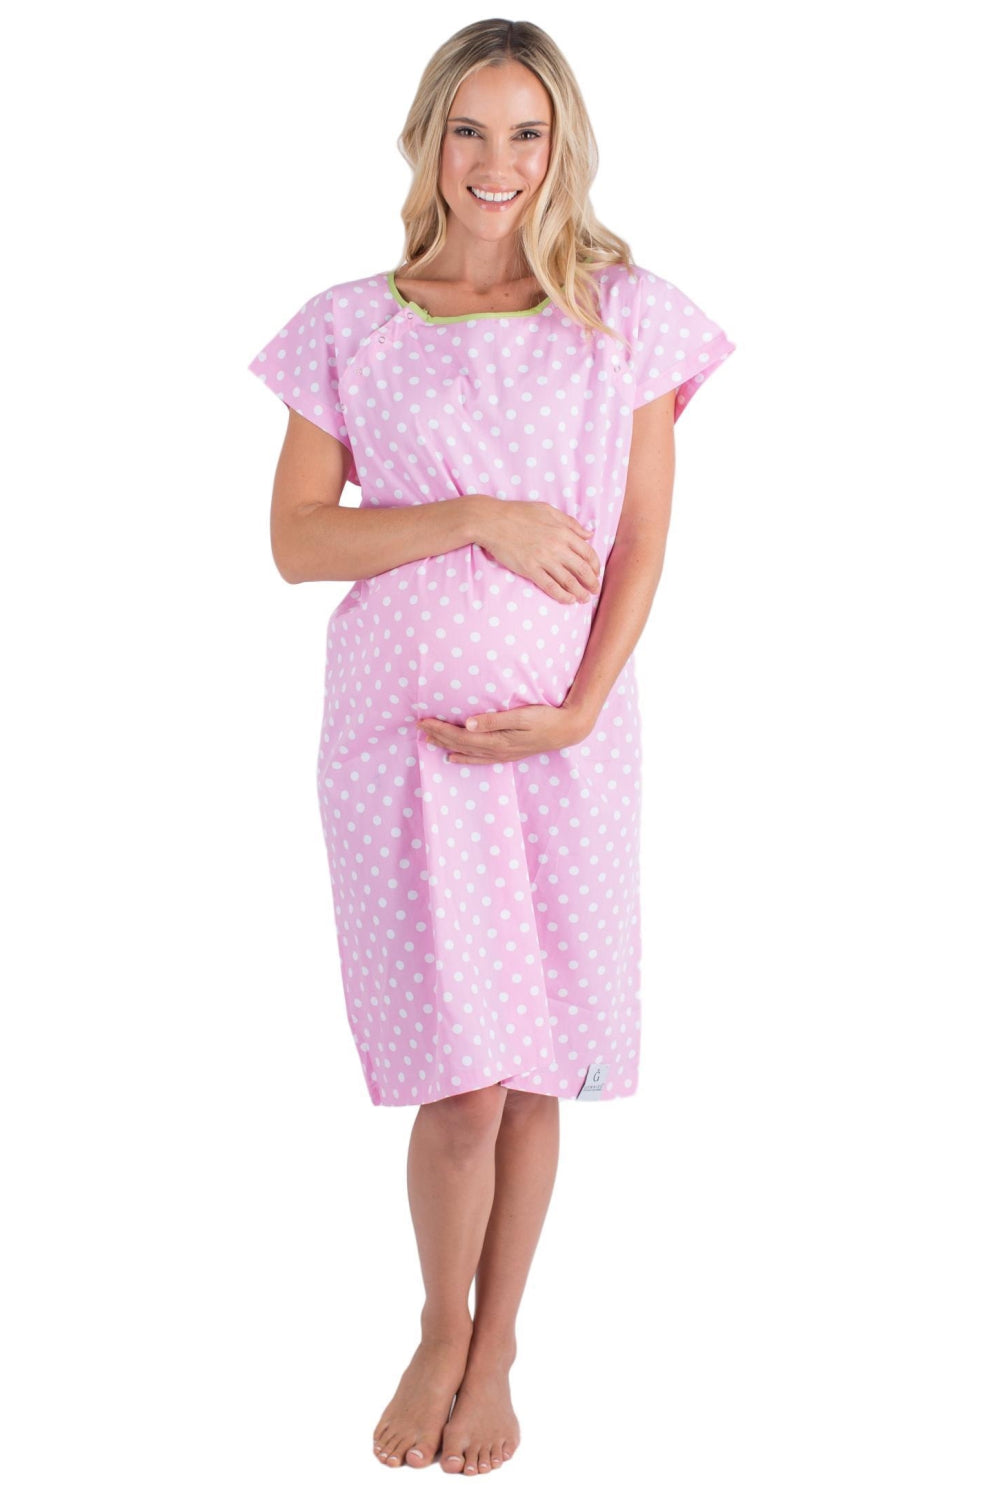 0f332f5468b Molly Gownie Maternity Delivery Labor Hospital Birthing Gown – Baby ...